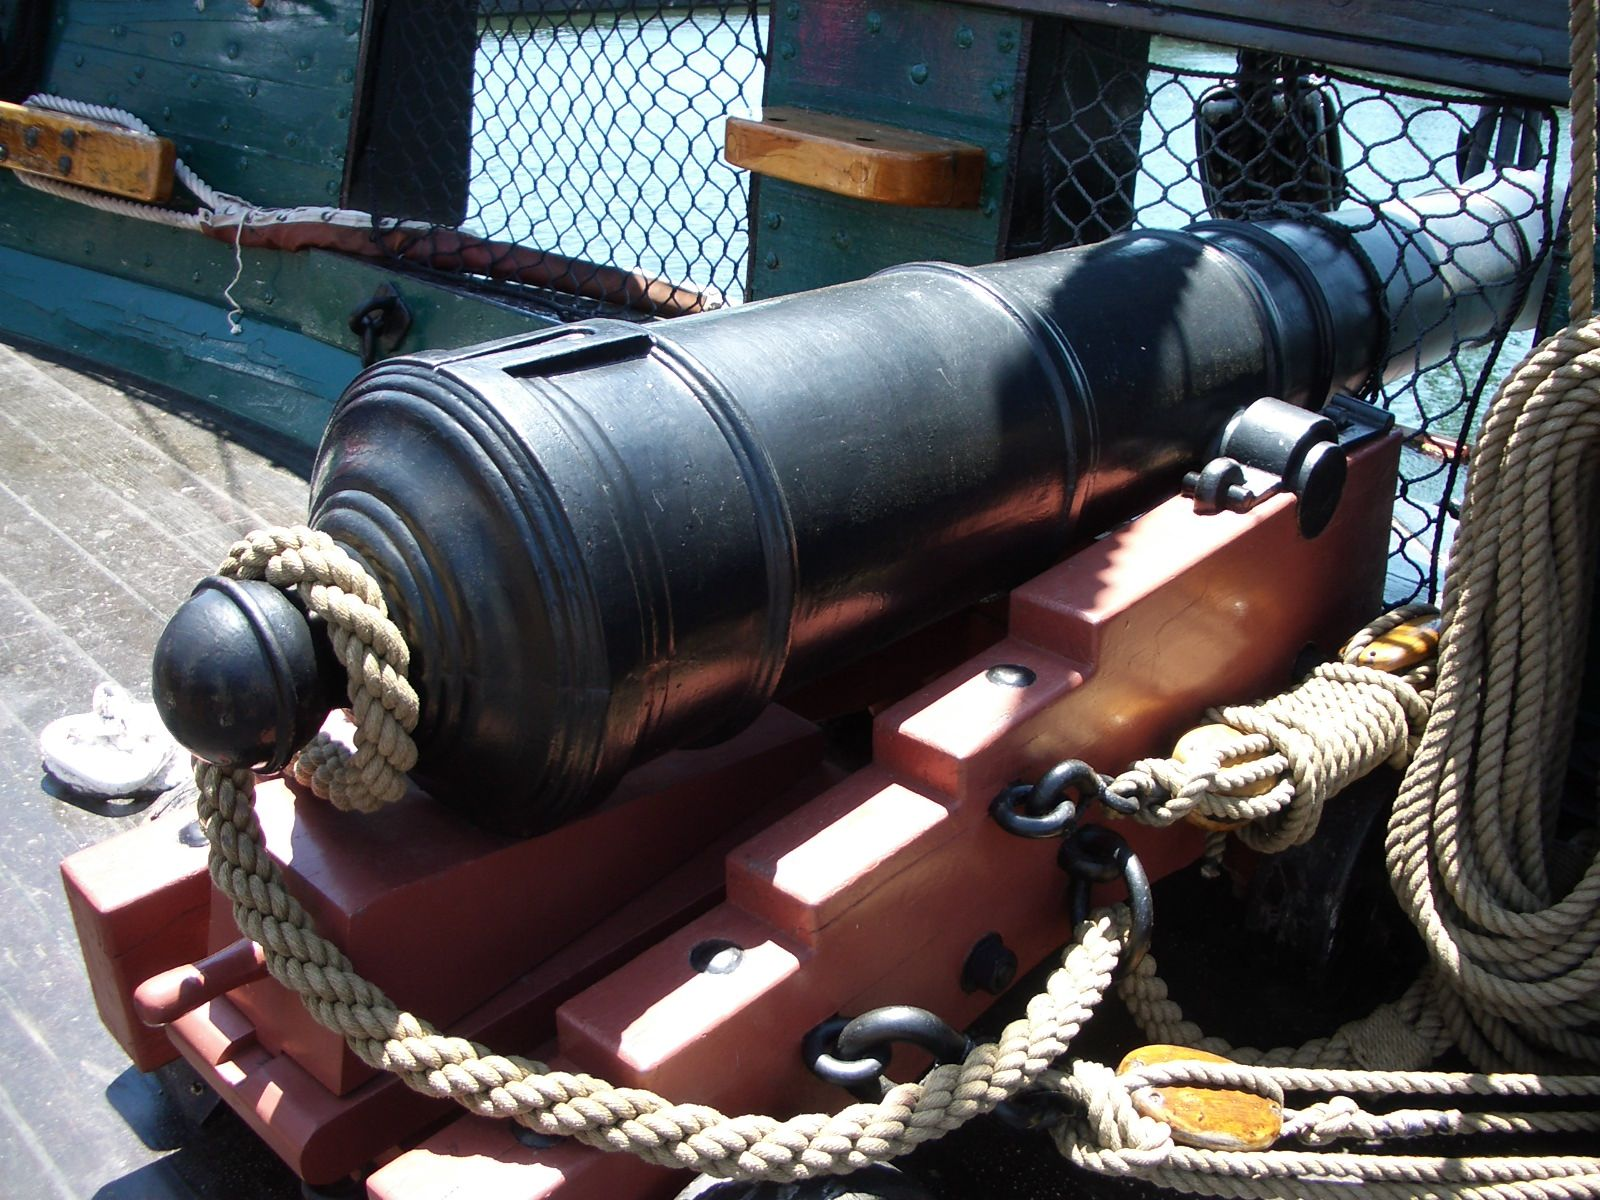 Pin on Nautical Notions and Oceans Uss Constitution Pictures Of Deck